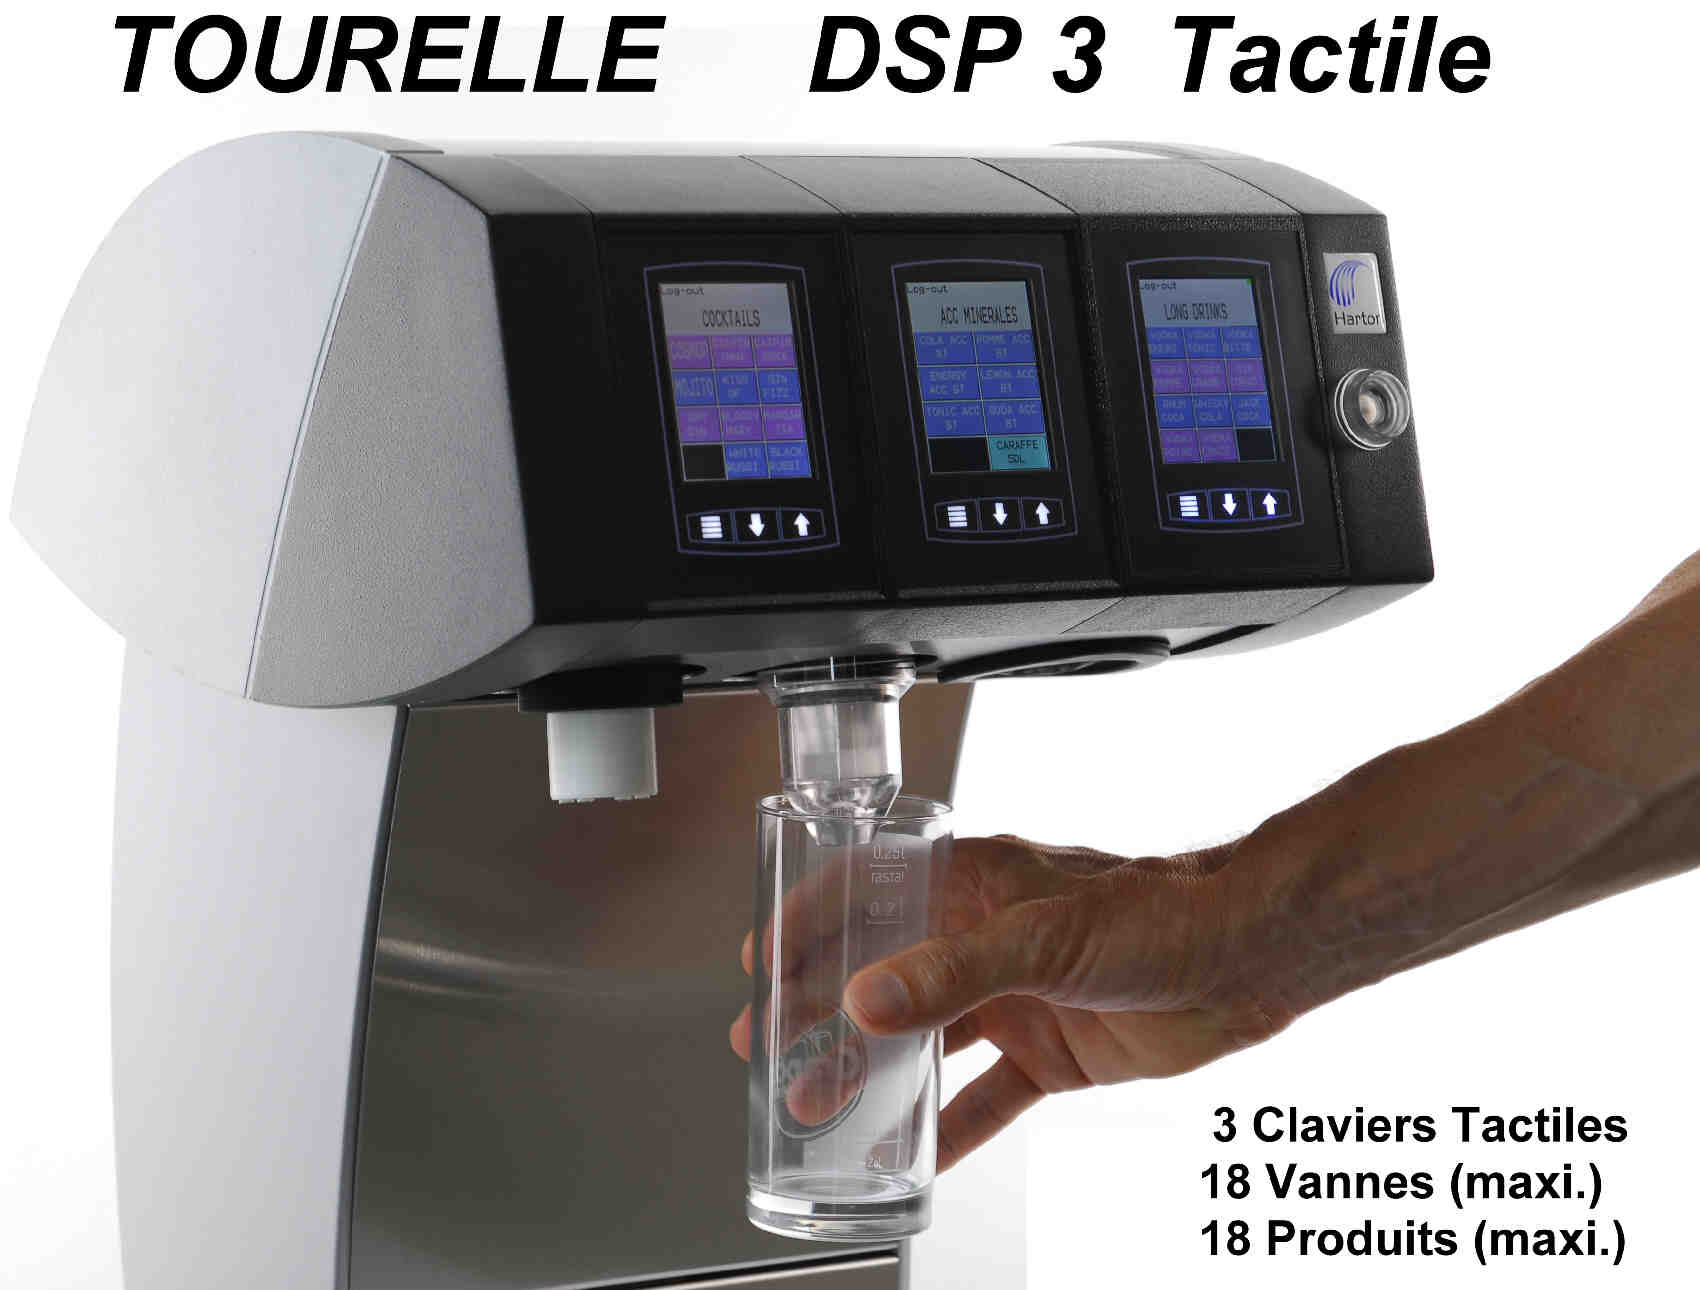 DSP 3 touch